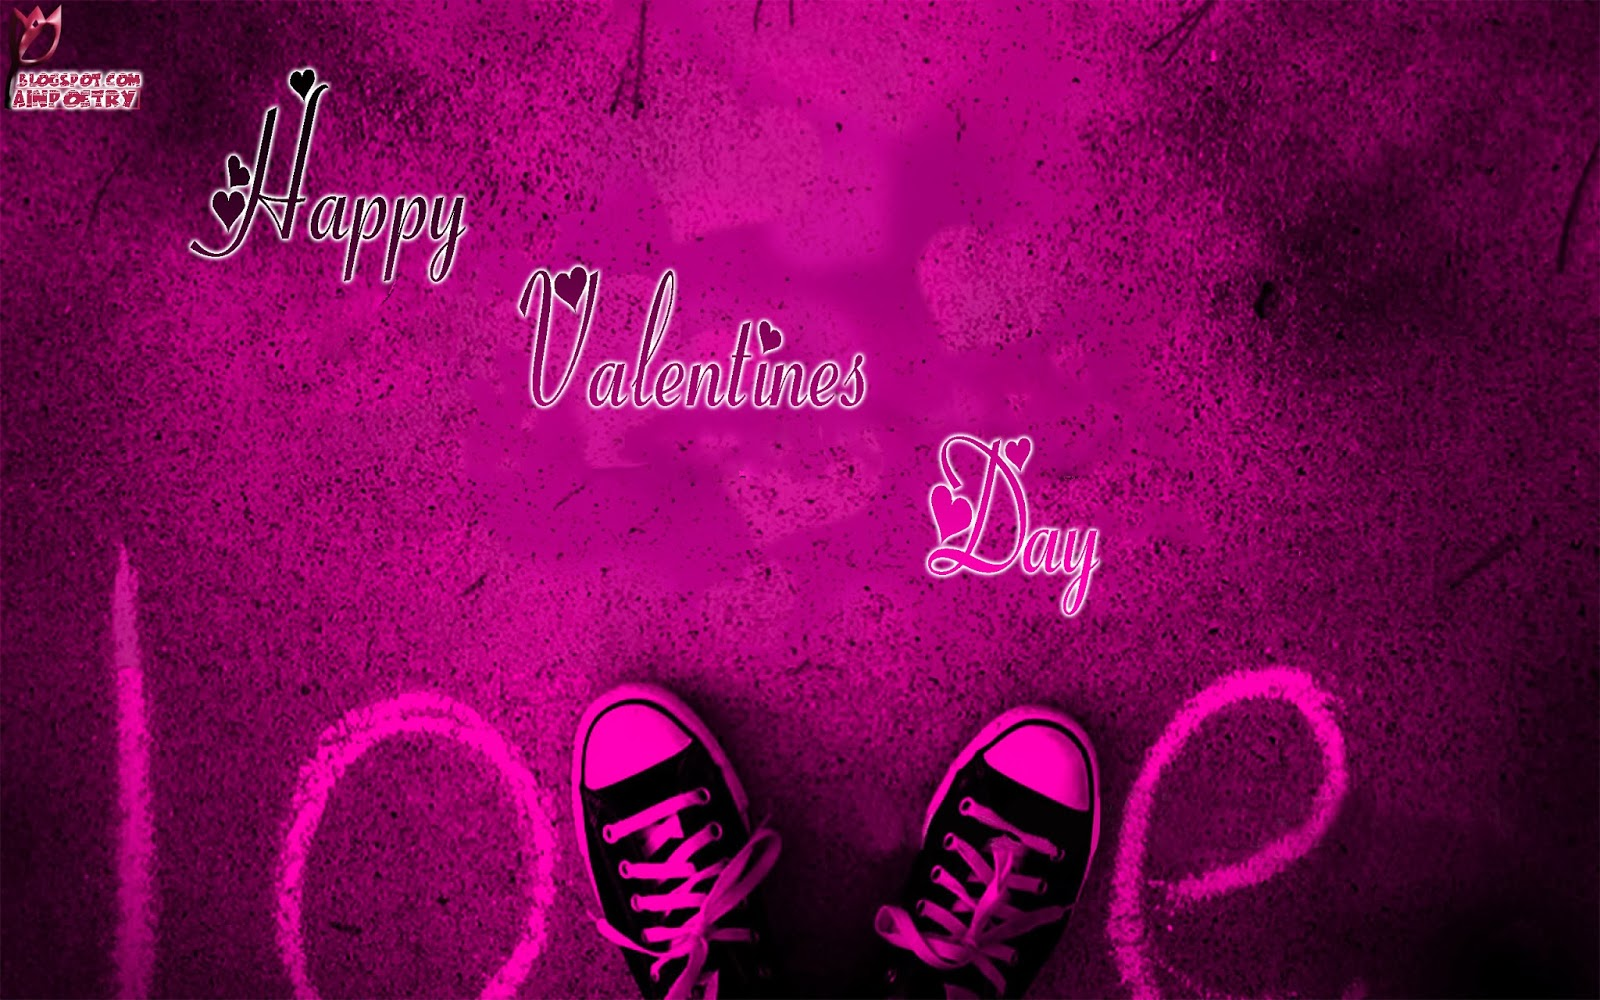 Happy-Valentines-Day-Wishes-Wallpapers-For-lovers-Image-HD-Wide